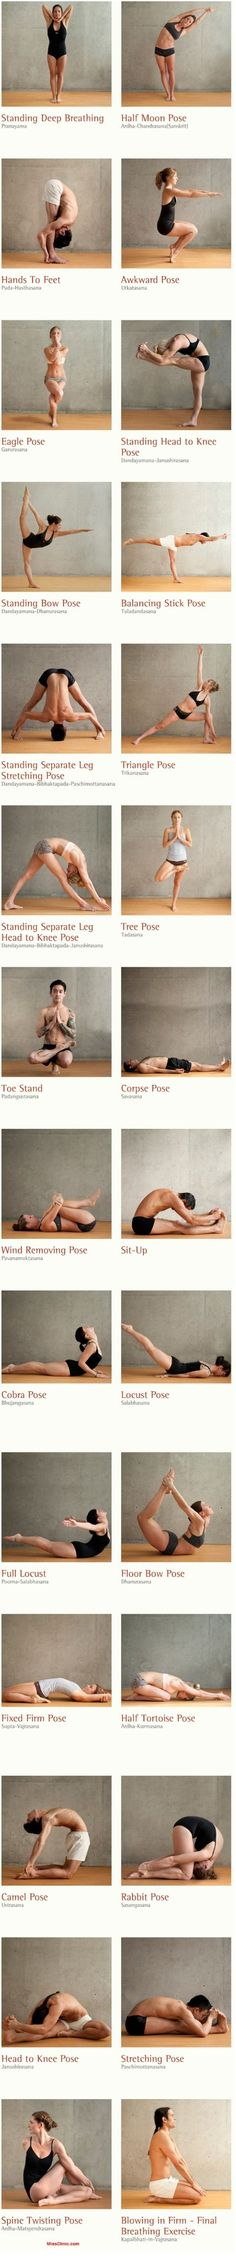 26 Healthy Yoga Postures - I do these every week in Bikram Yoga in a 37 degree Celsius room and the impact is fantastic. Best exercise ever.